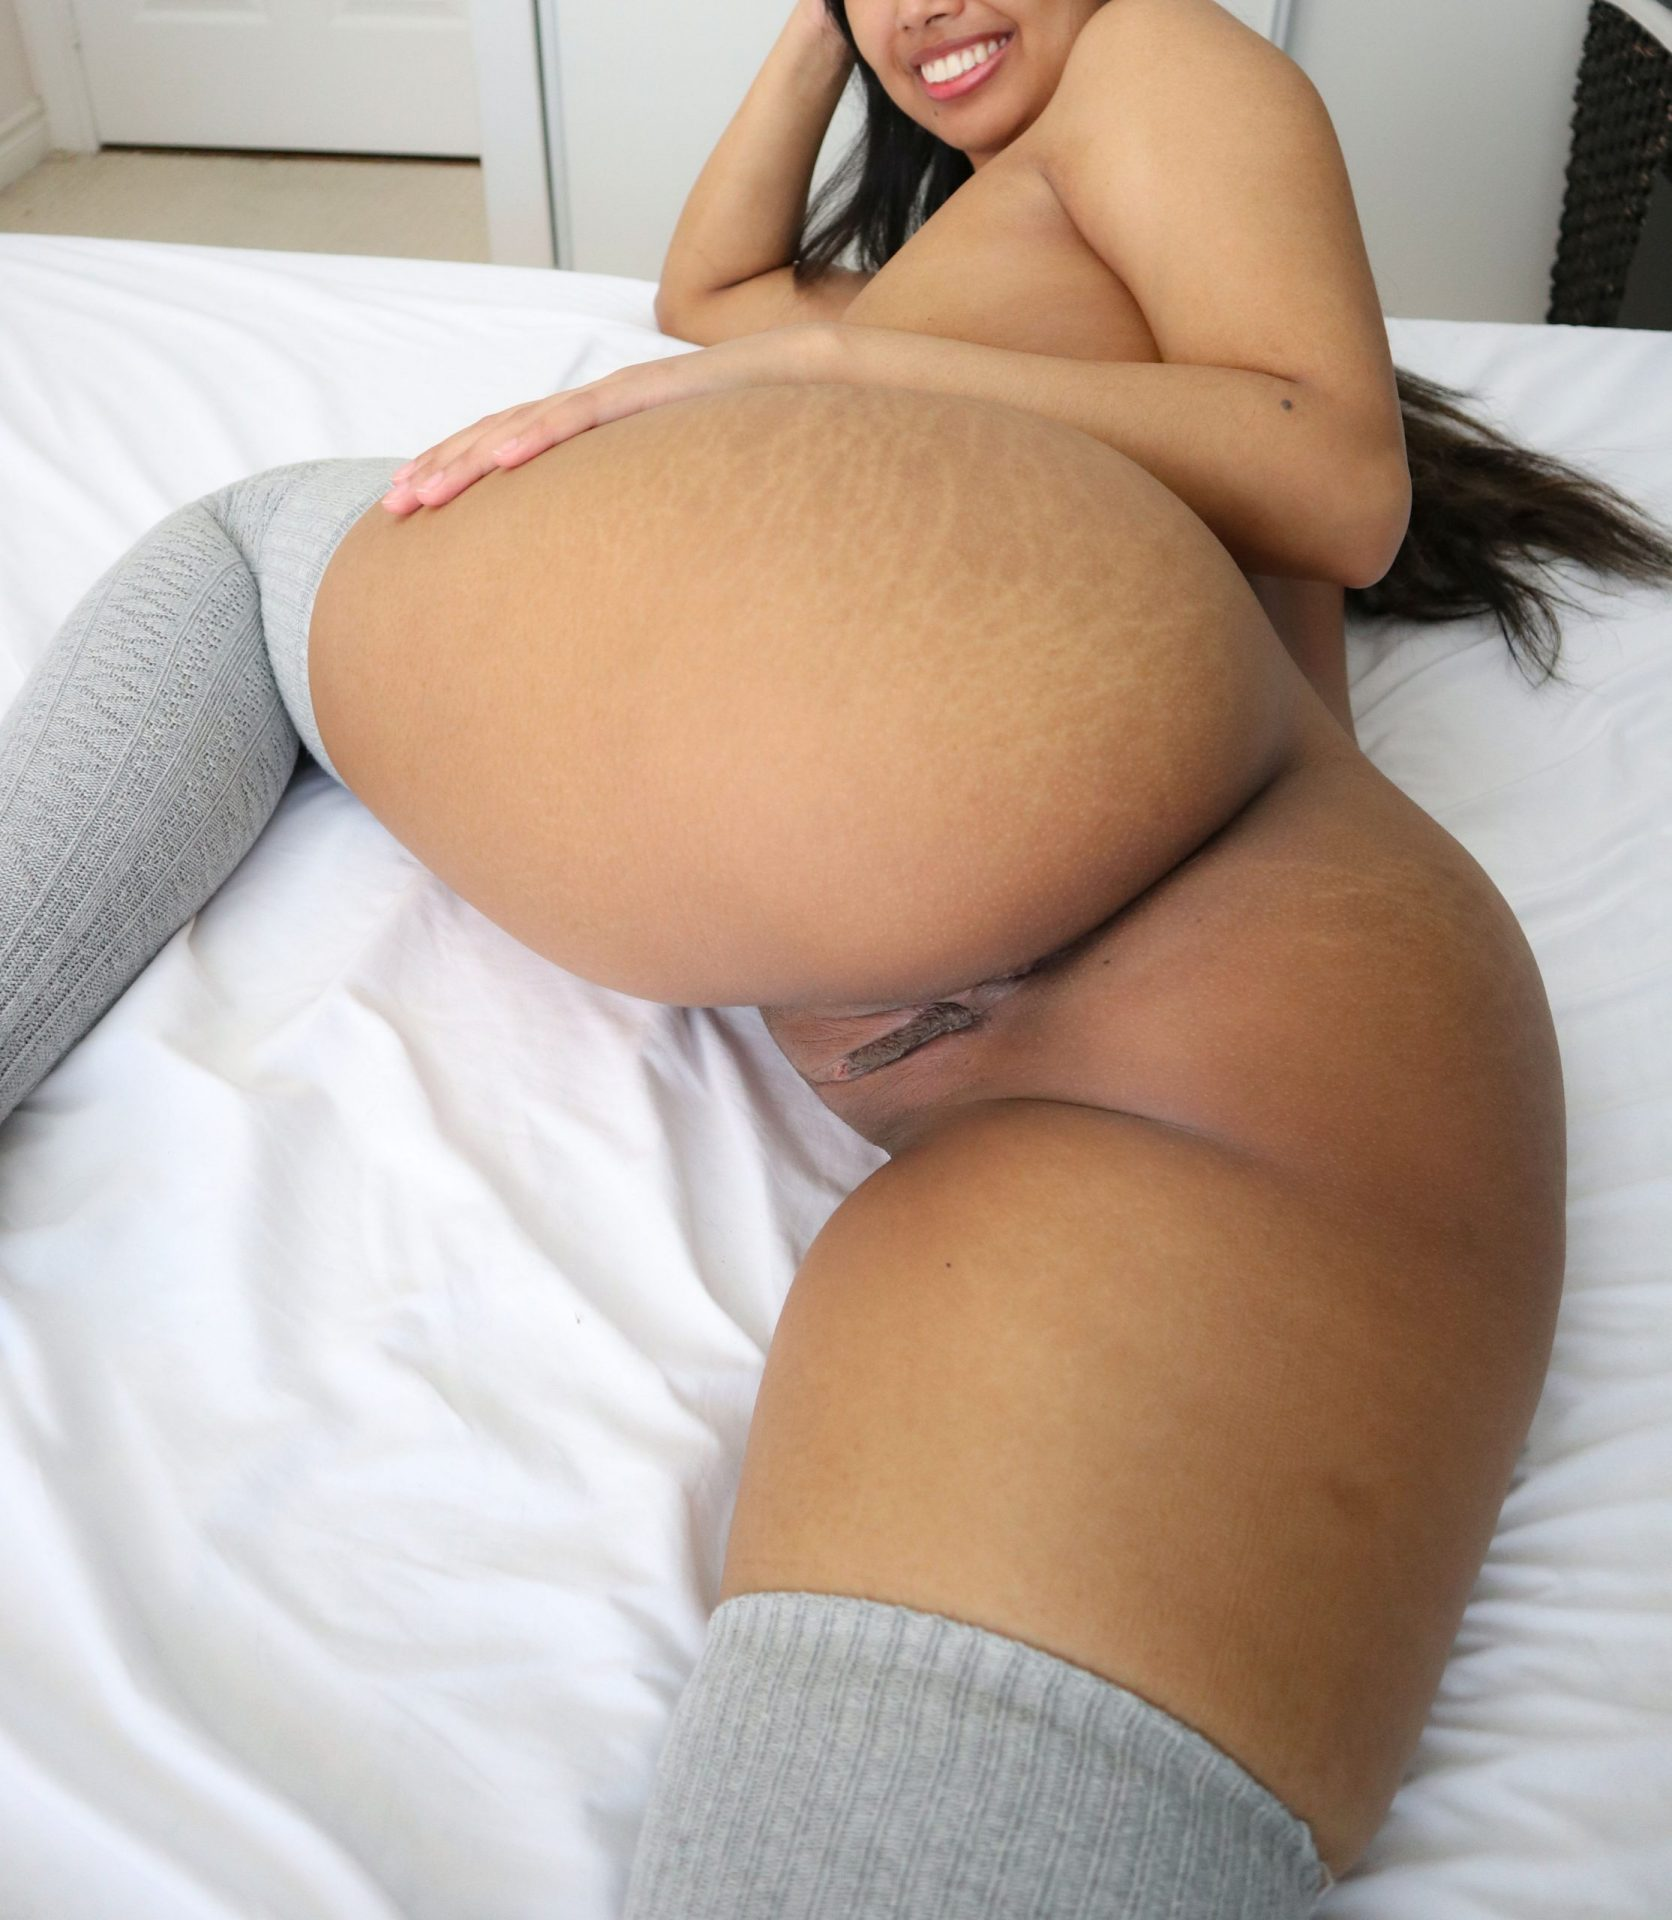 My fat filipina ass is covered in tiger stripes, would you still fuck me?